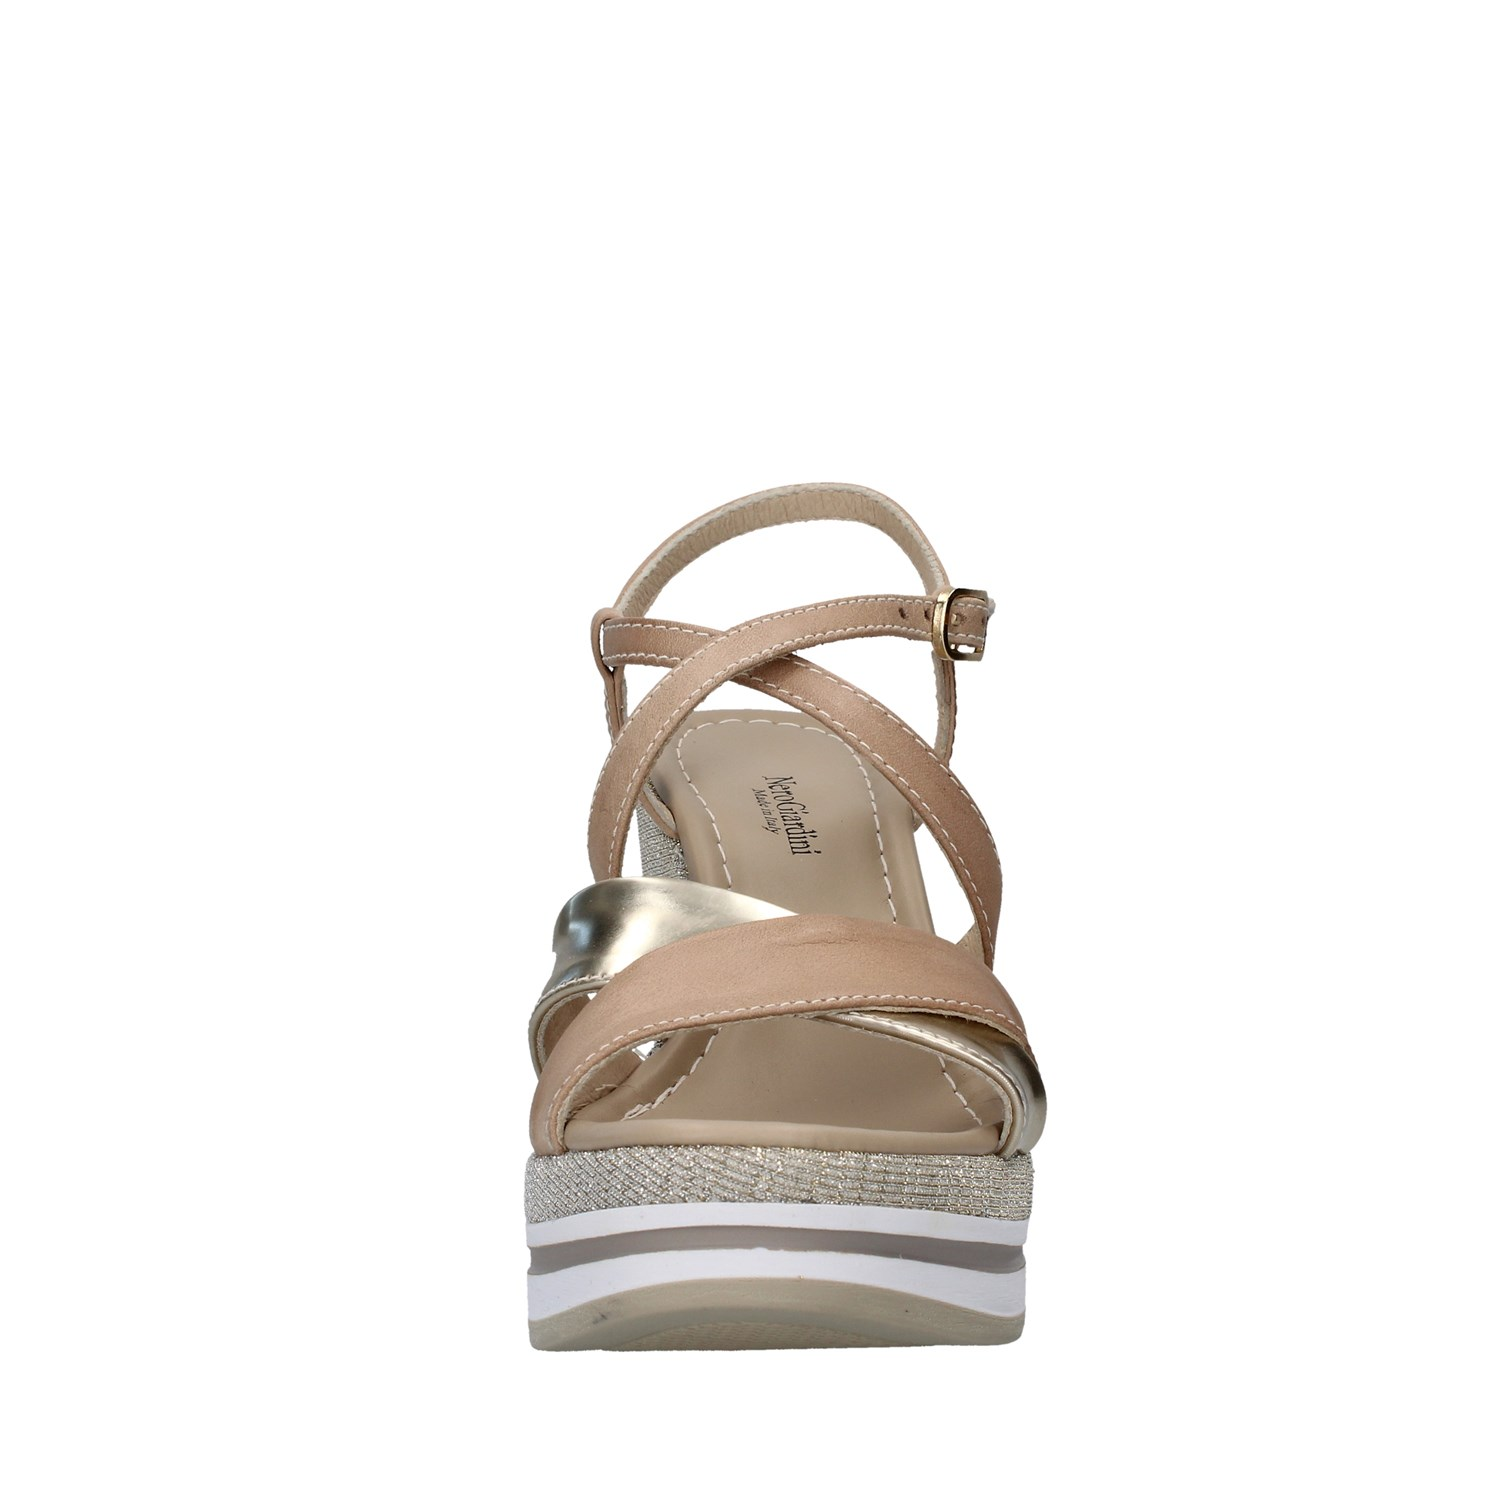 Nero Giardini Shoes Woman With wedge BEIGE E012460D